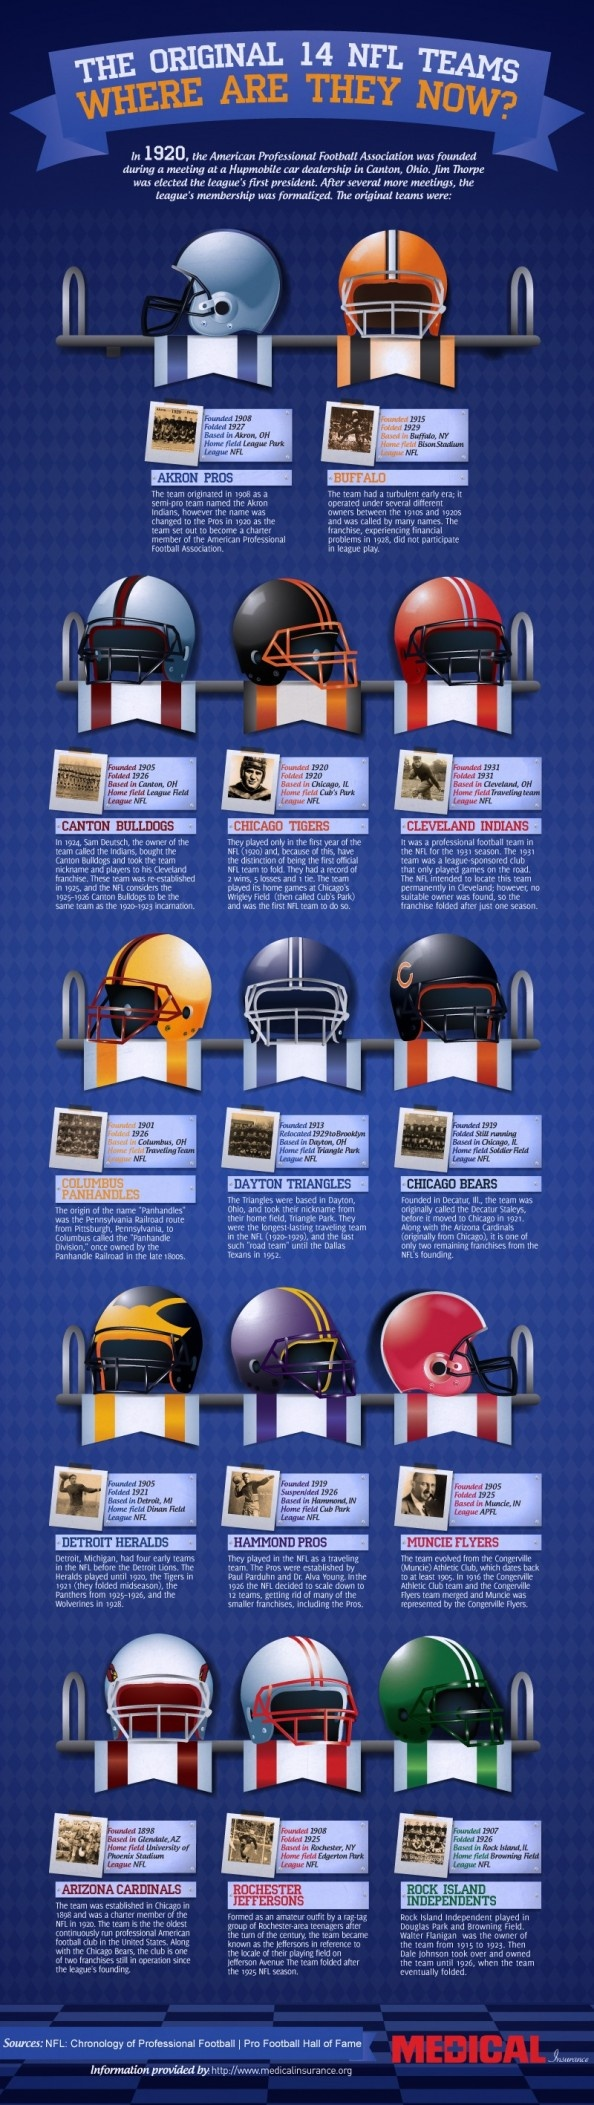 Who are the Original 14 NFL Football Teams - and where are they now? #NFL #Trivia #URPowered.com